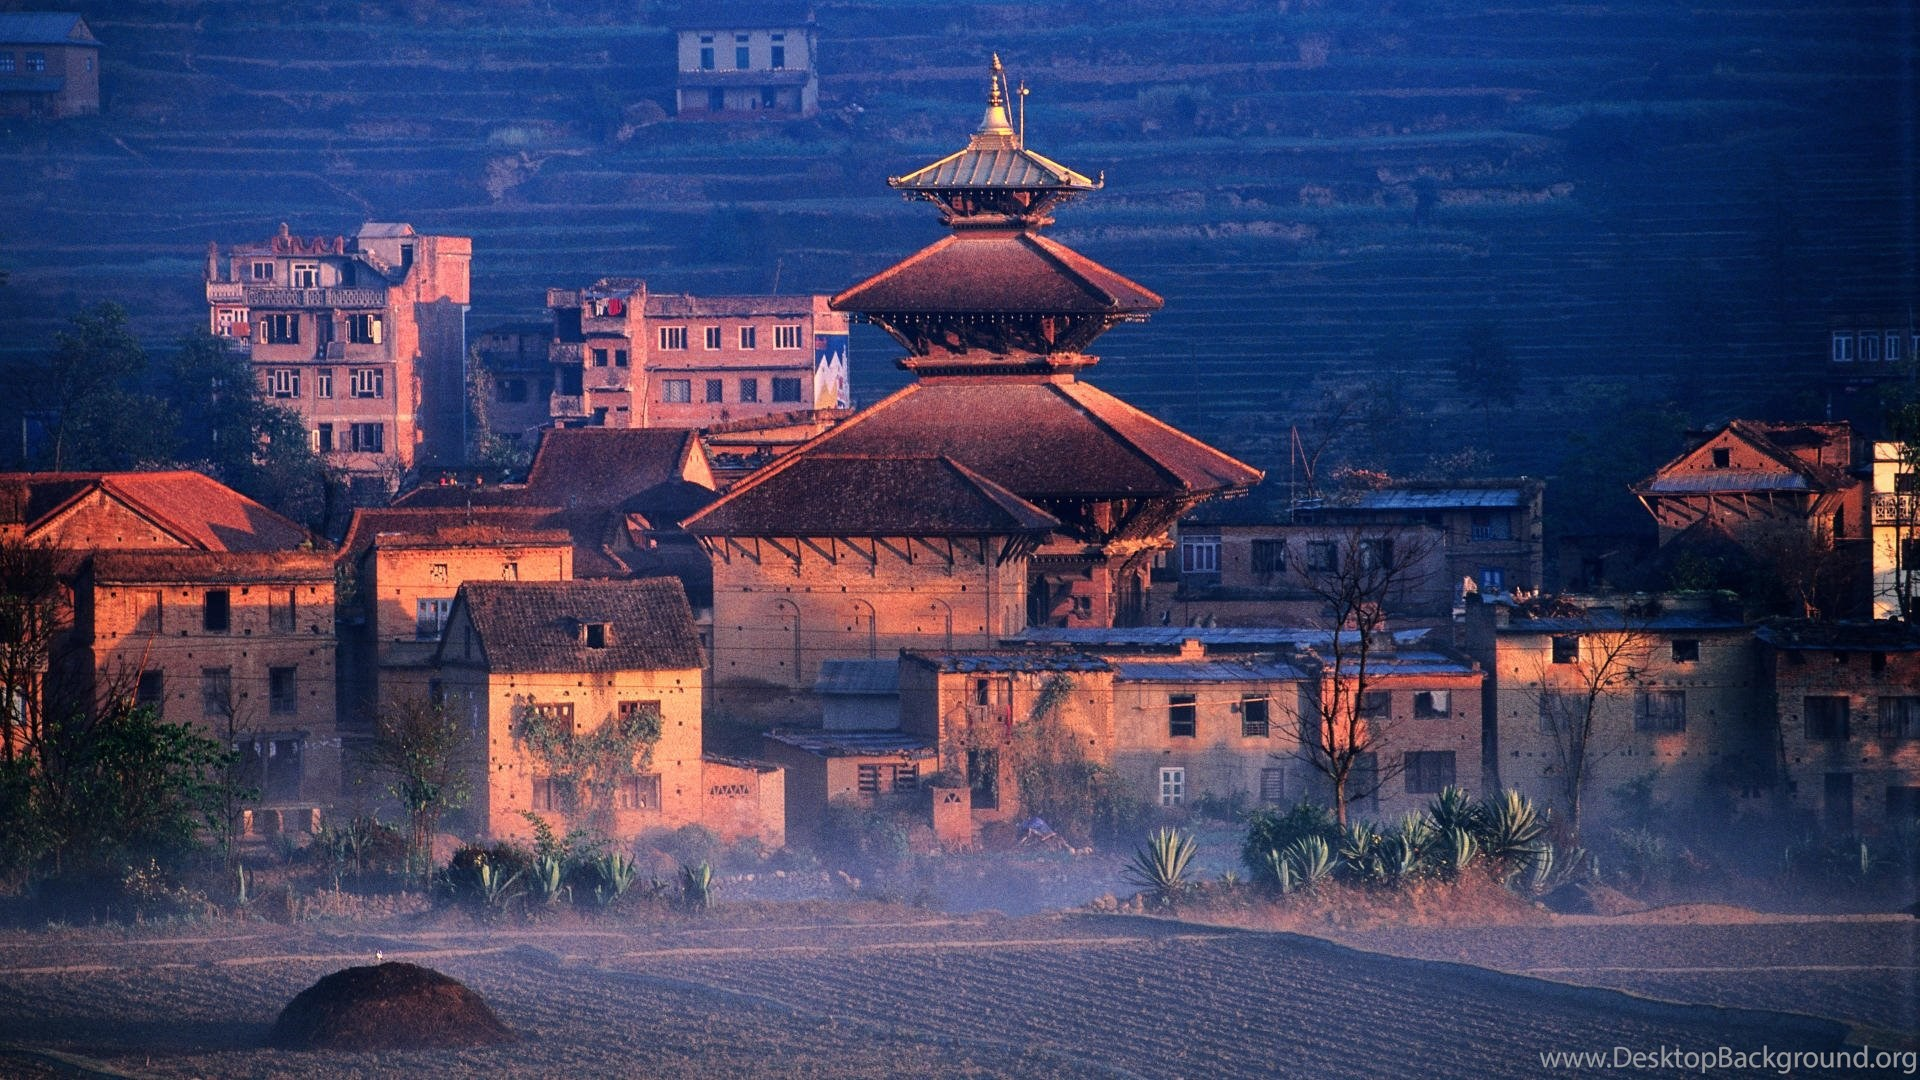 HD Wallpapers Nepal Wallpapermonkey.com Desktop Background